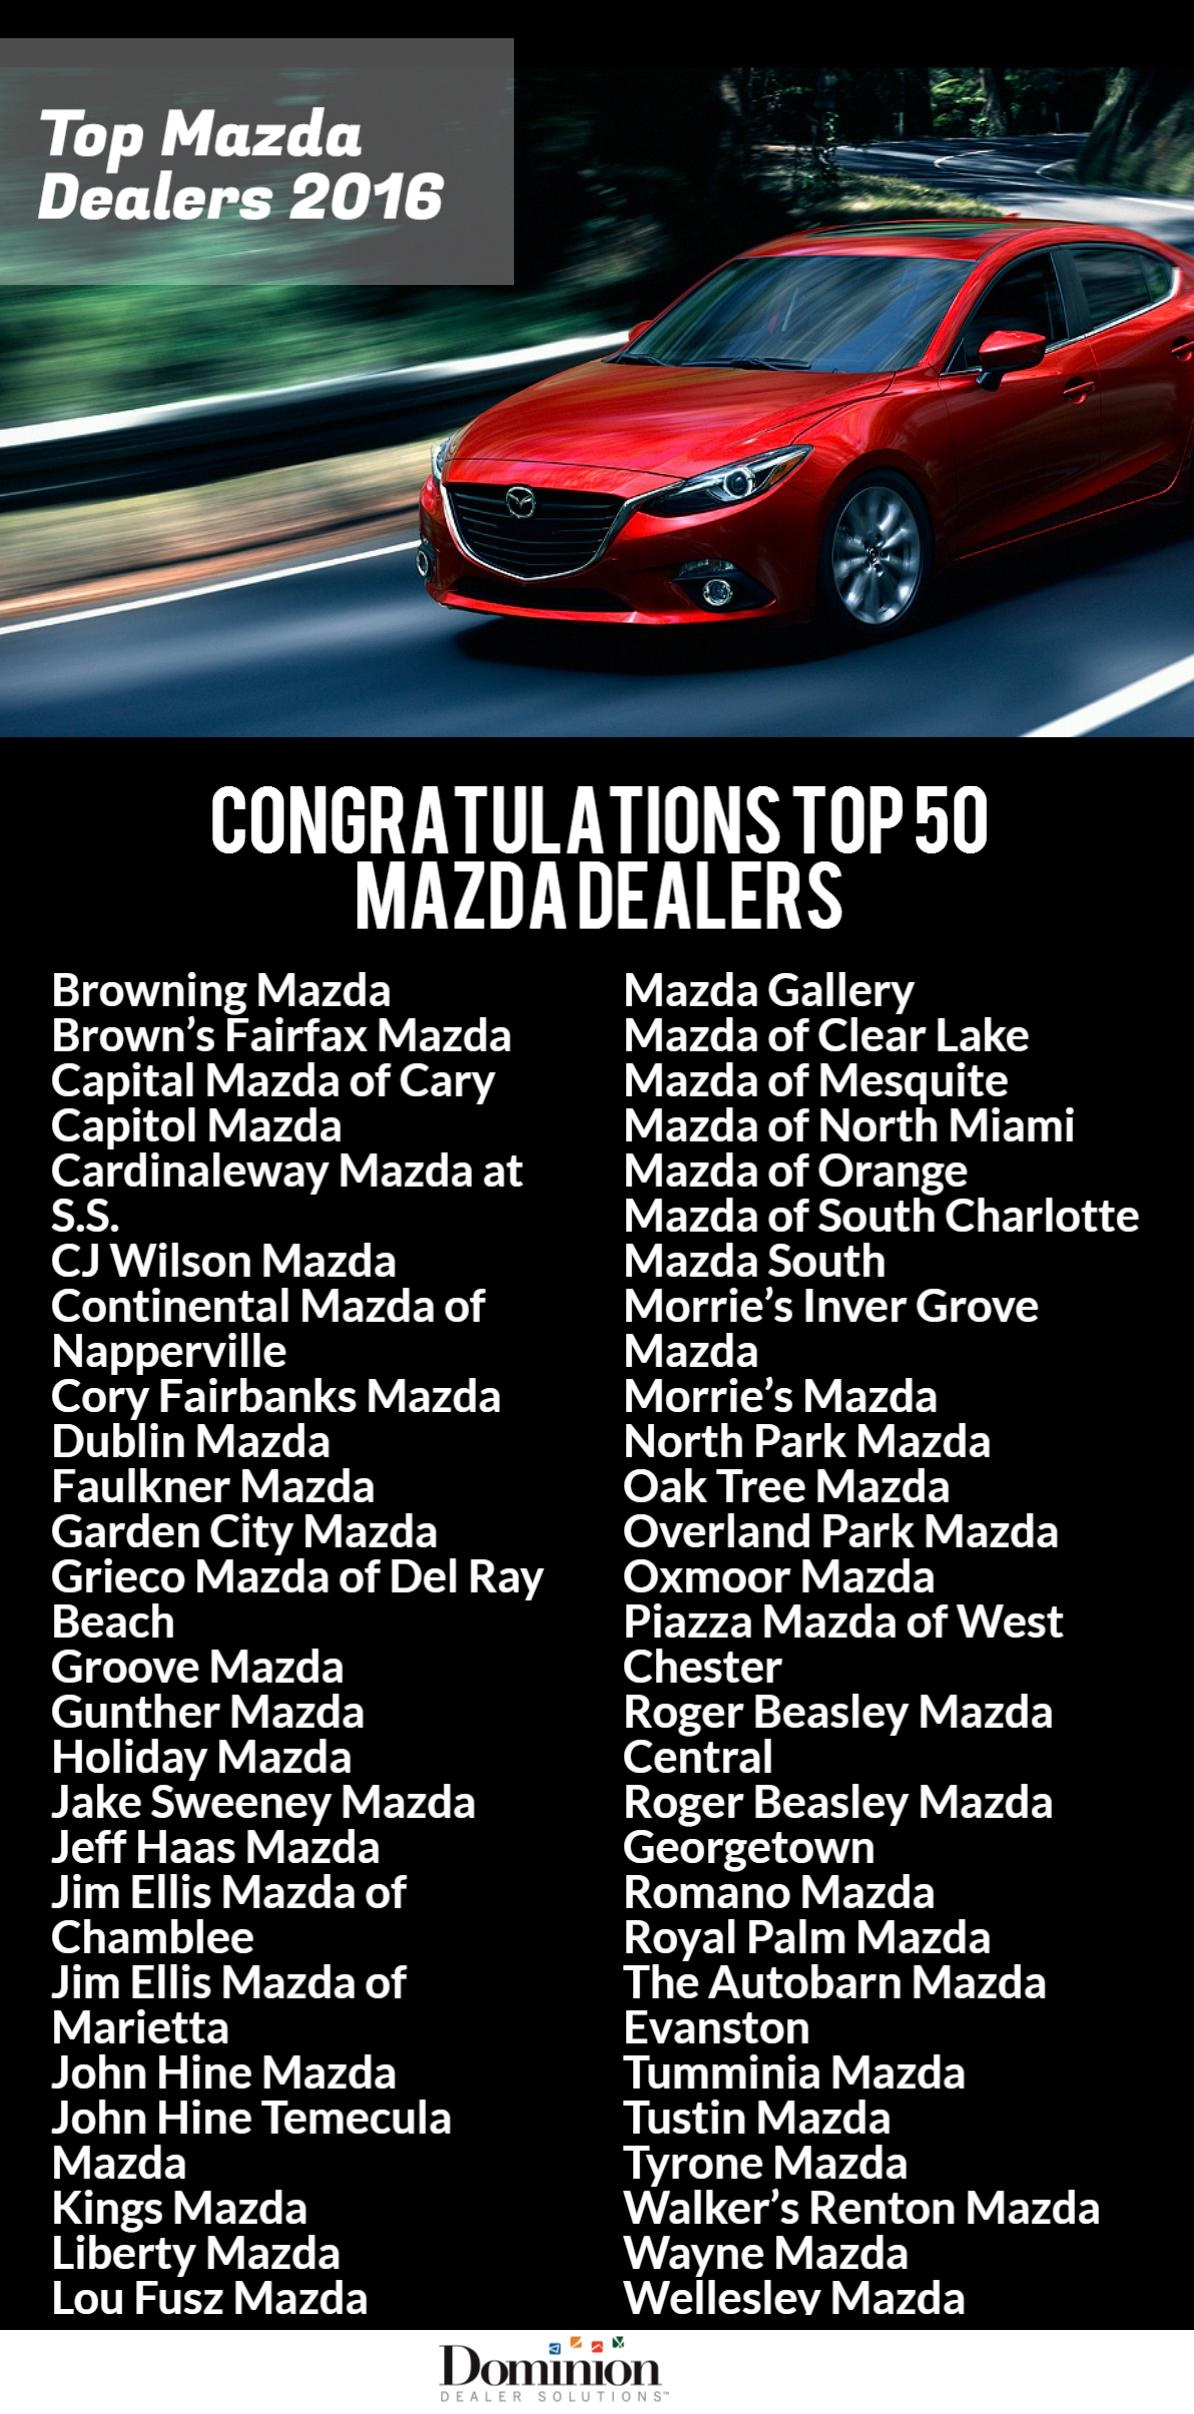 Top Mazda Dealers 2016 | Dominion Dealer Solutions